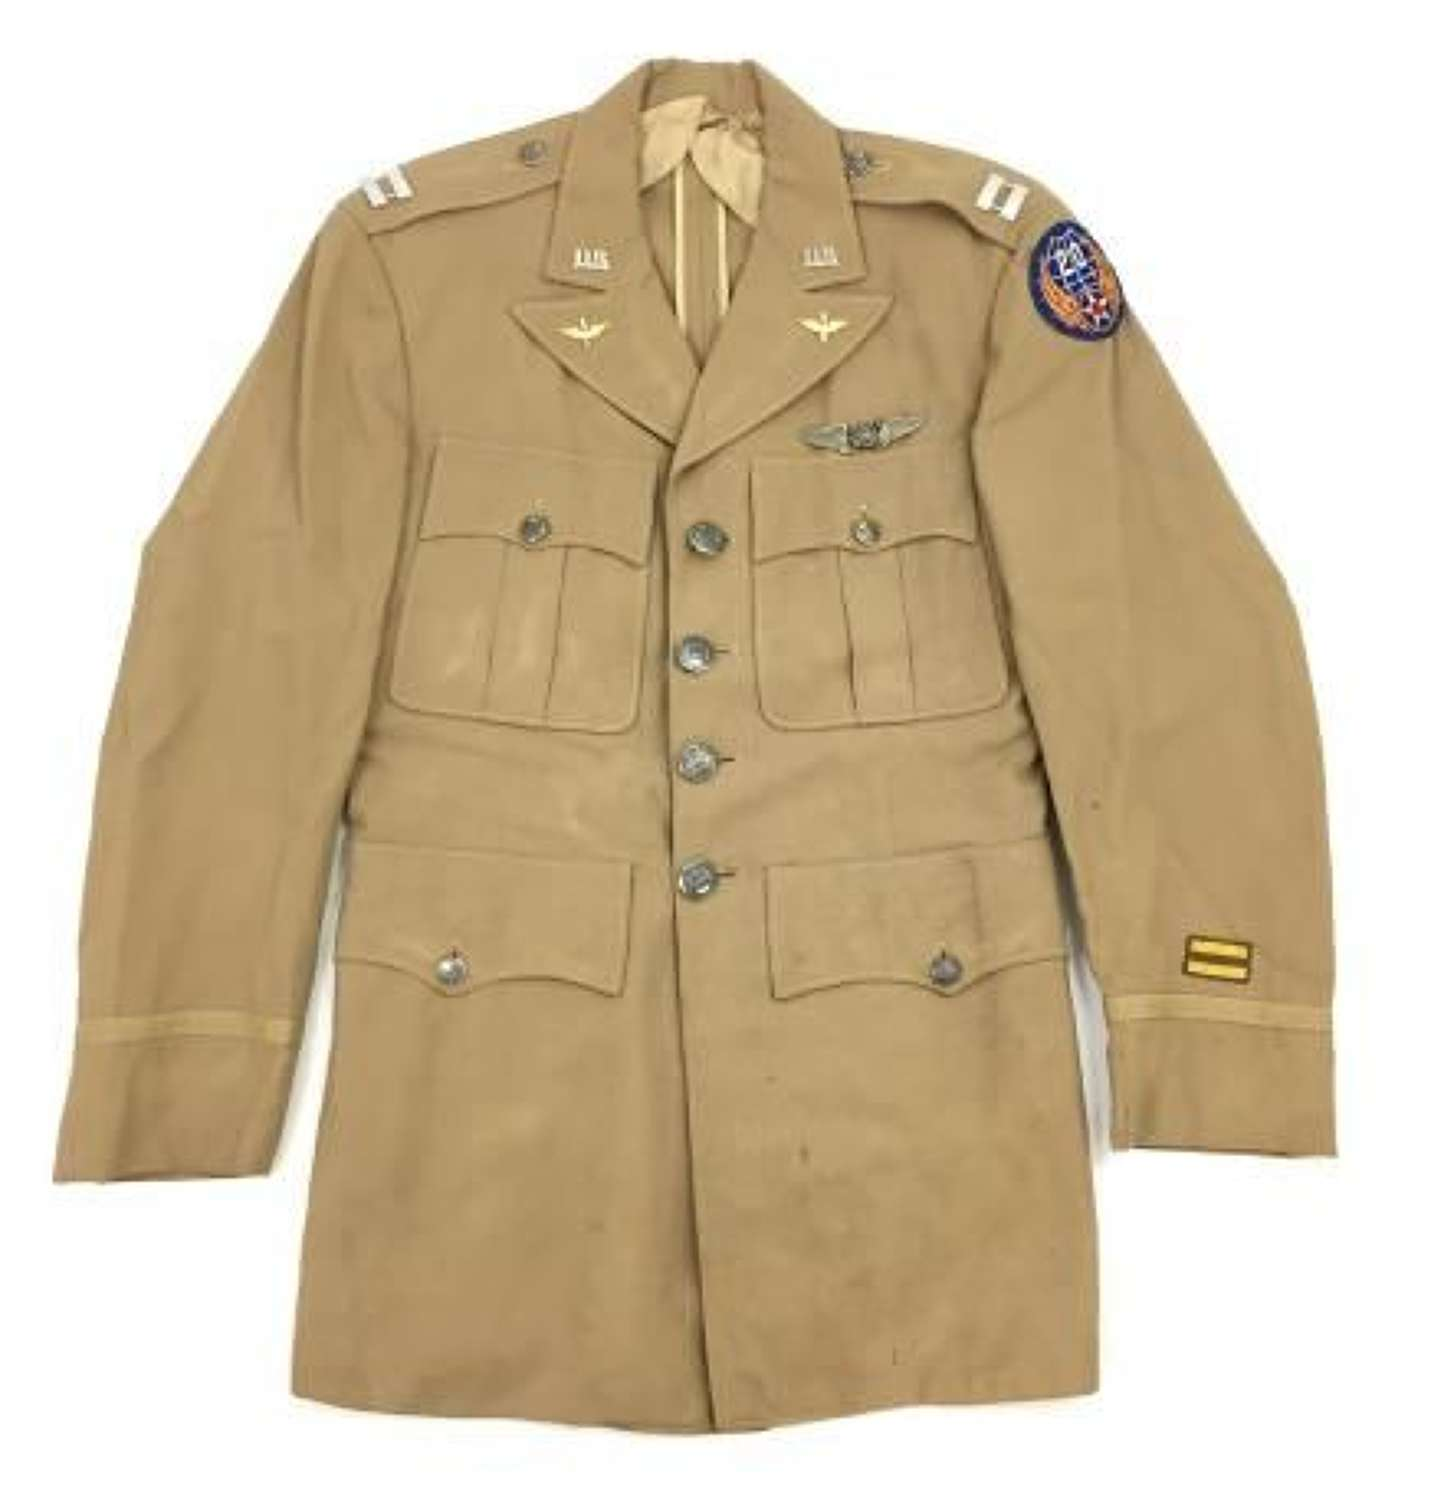 Original 1954 Dated USAF 20th Air Force Observers Summer Tunic